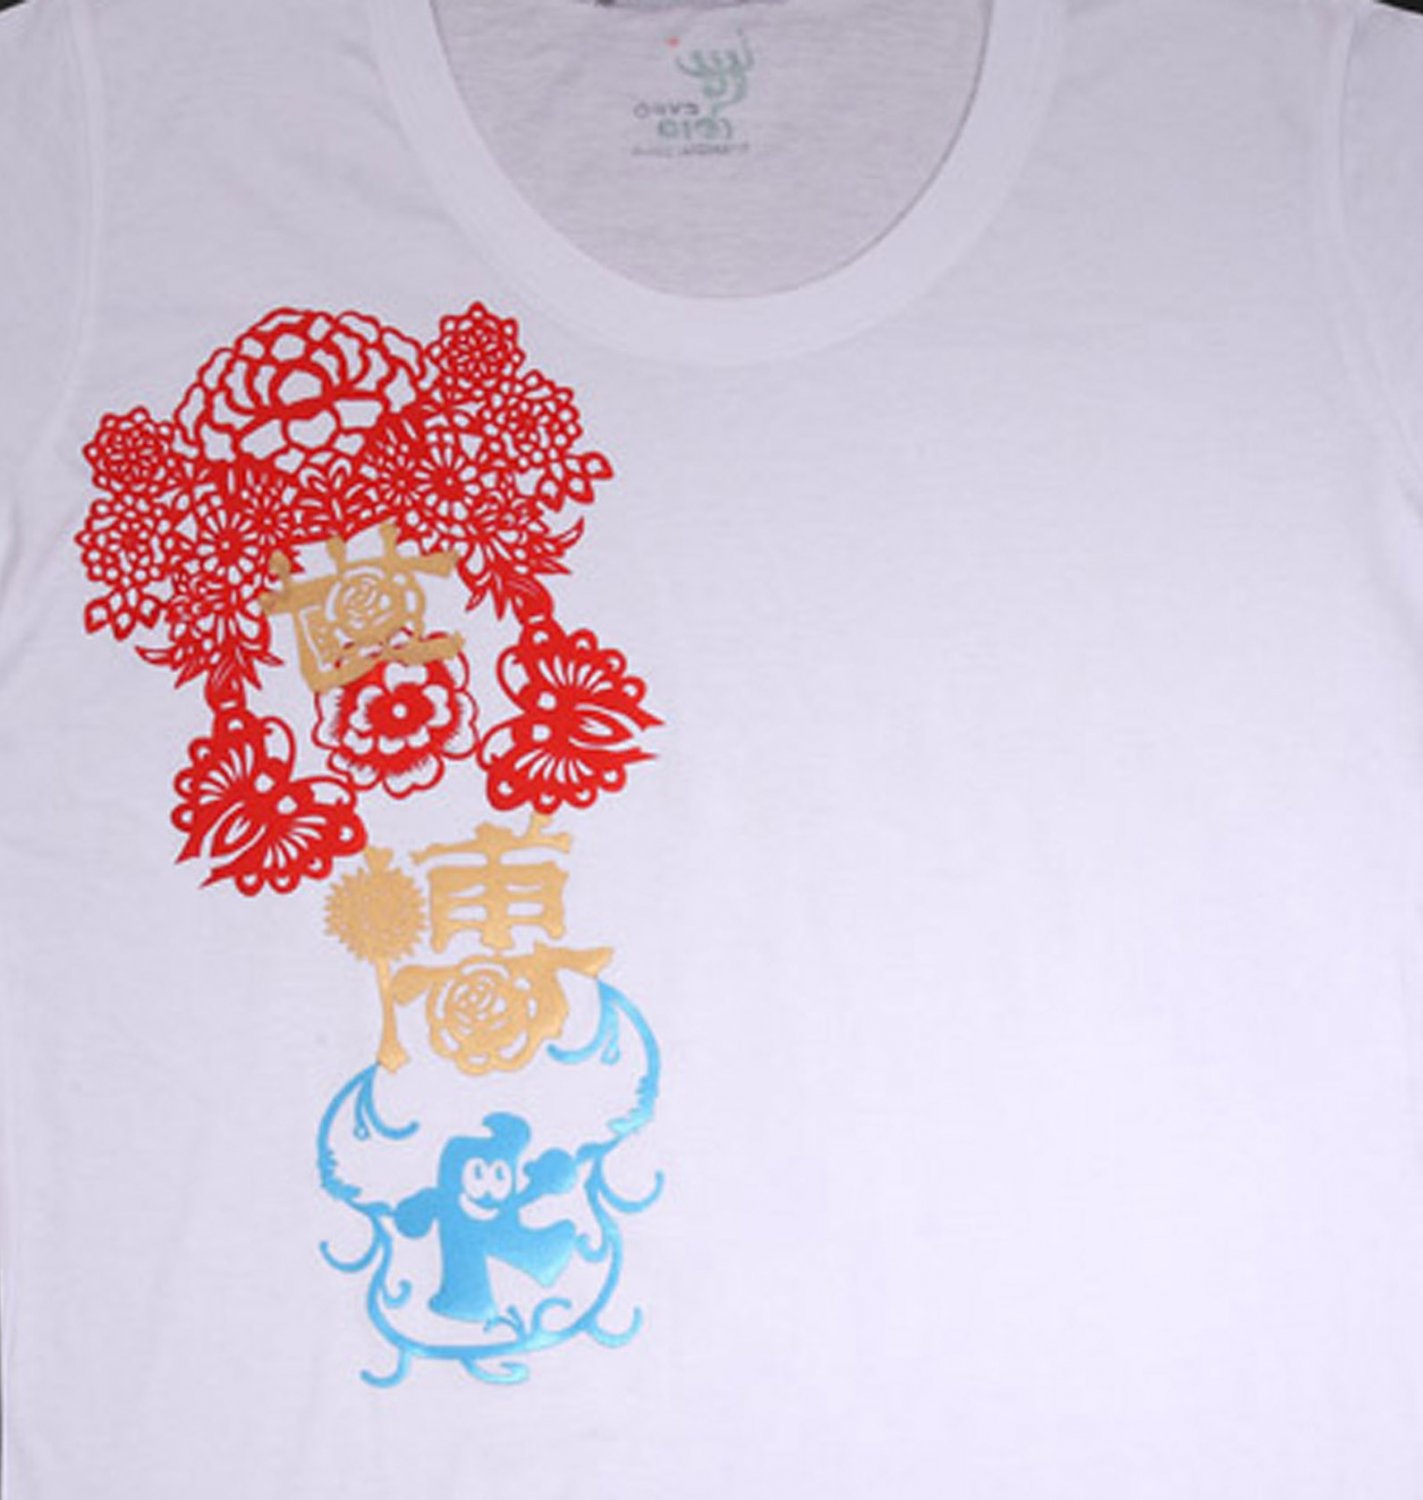 Business T Shirt World Expo Designs For Women. New!   (Women's Large)